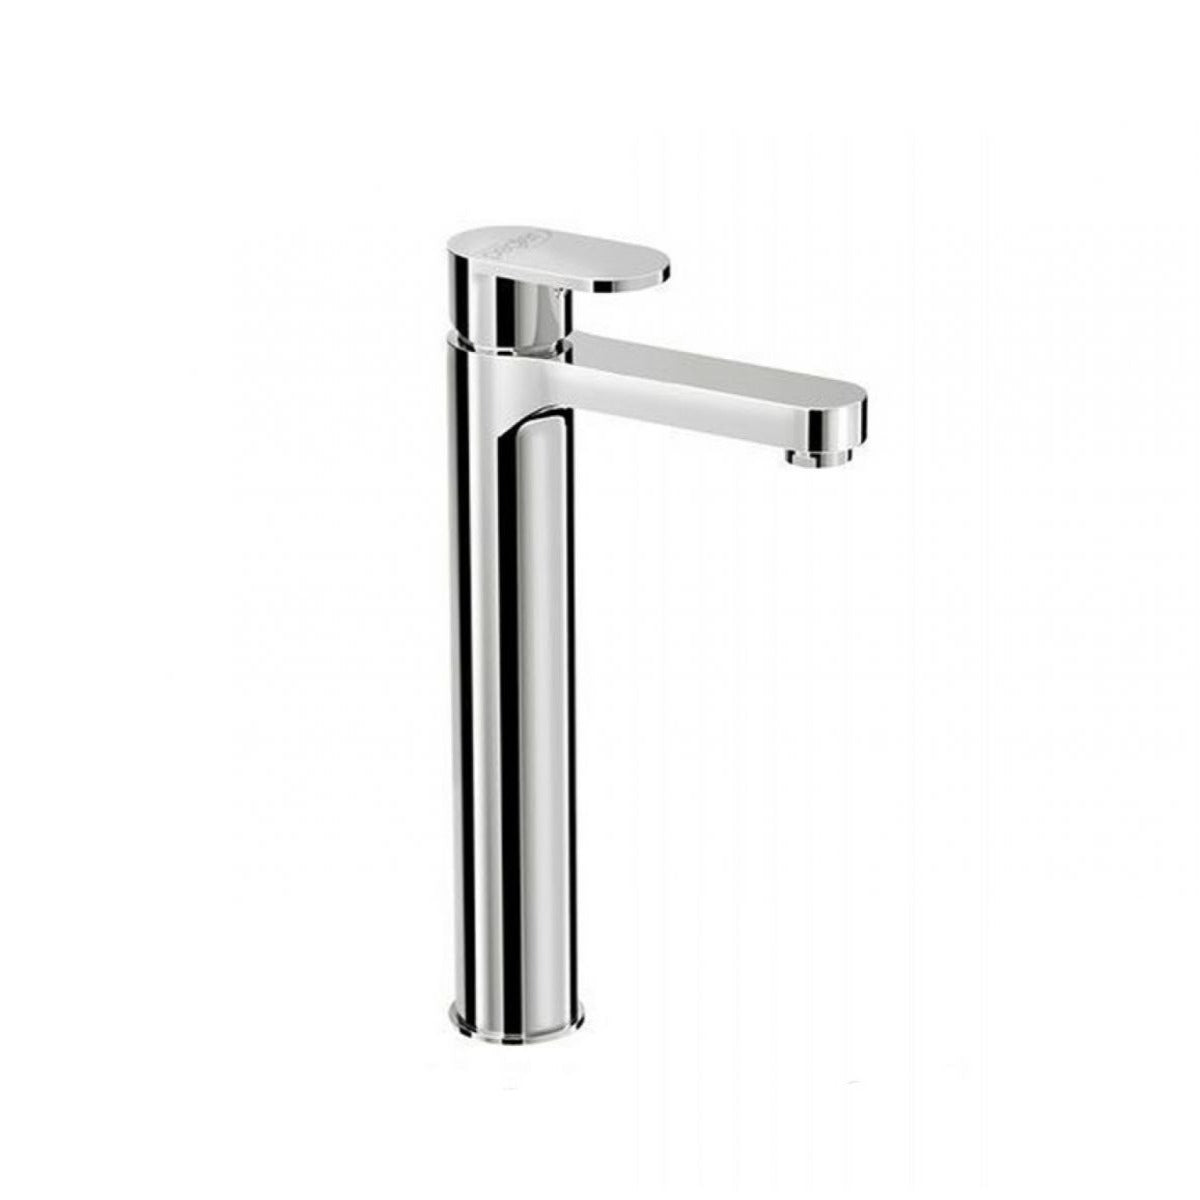 Strata Blade Tall Basin Mixer - blueskybathrooms